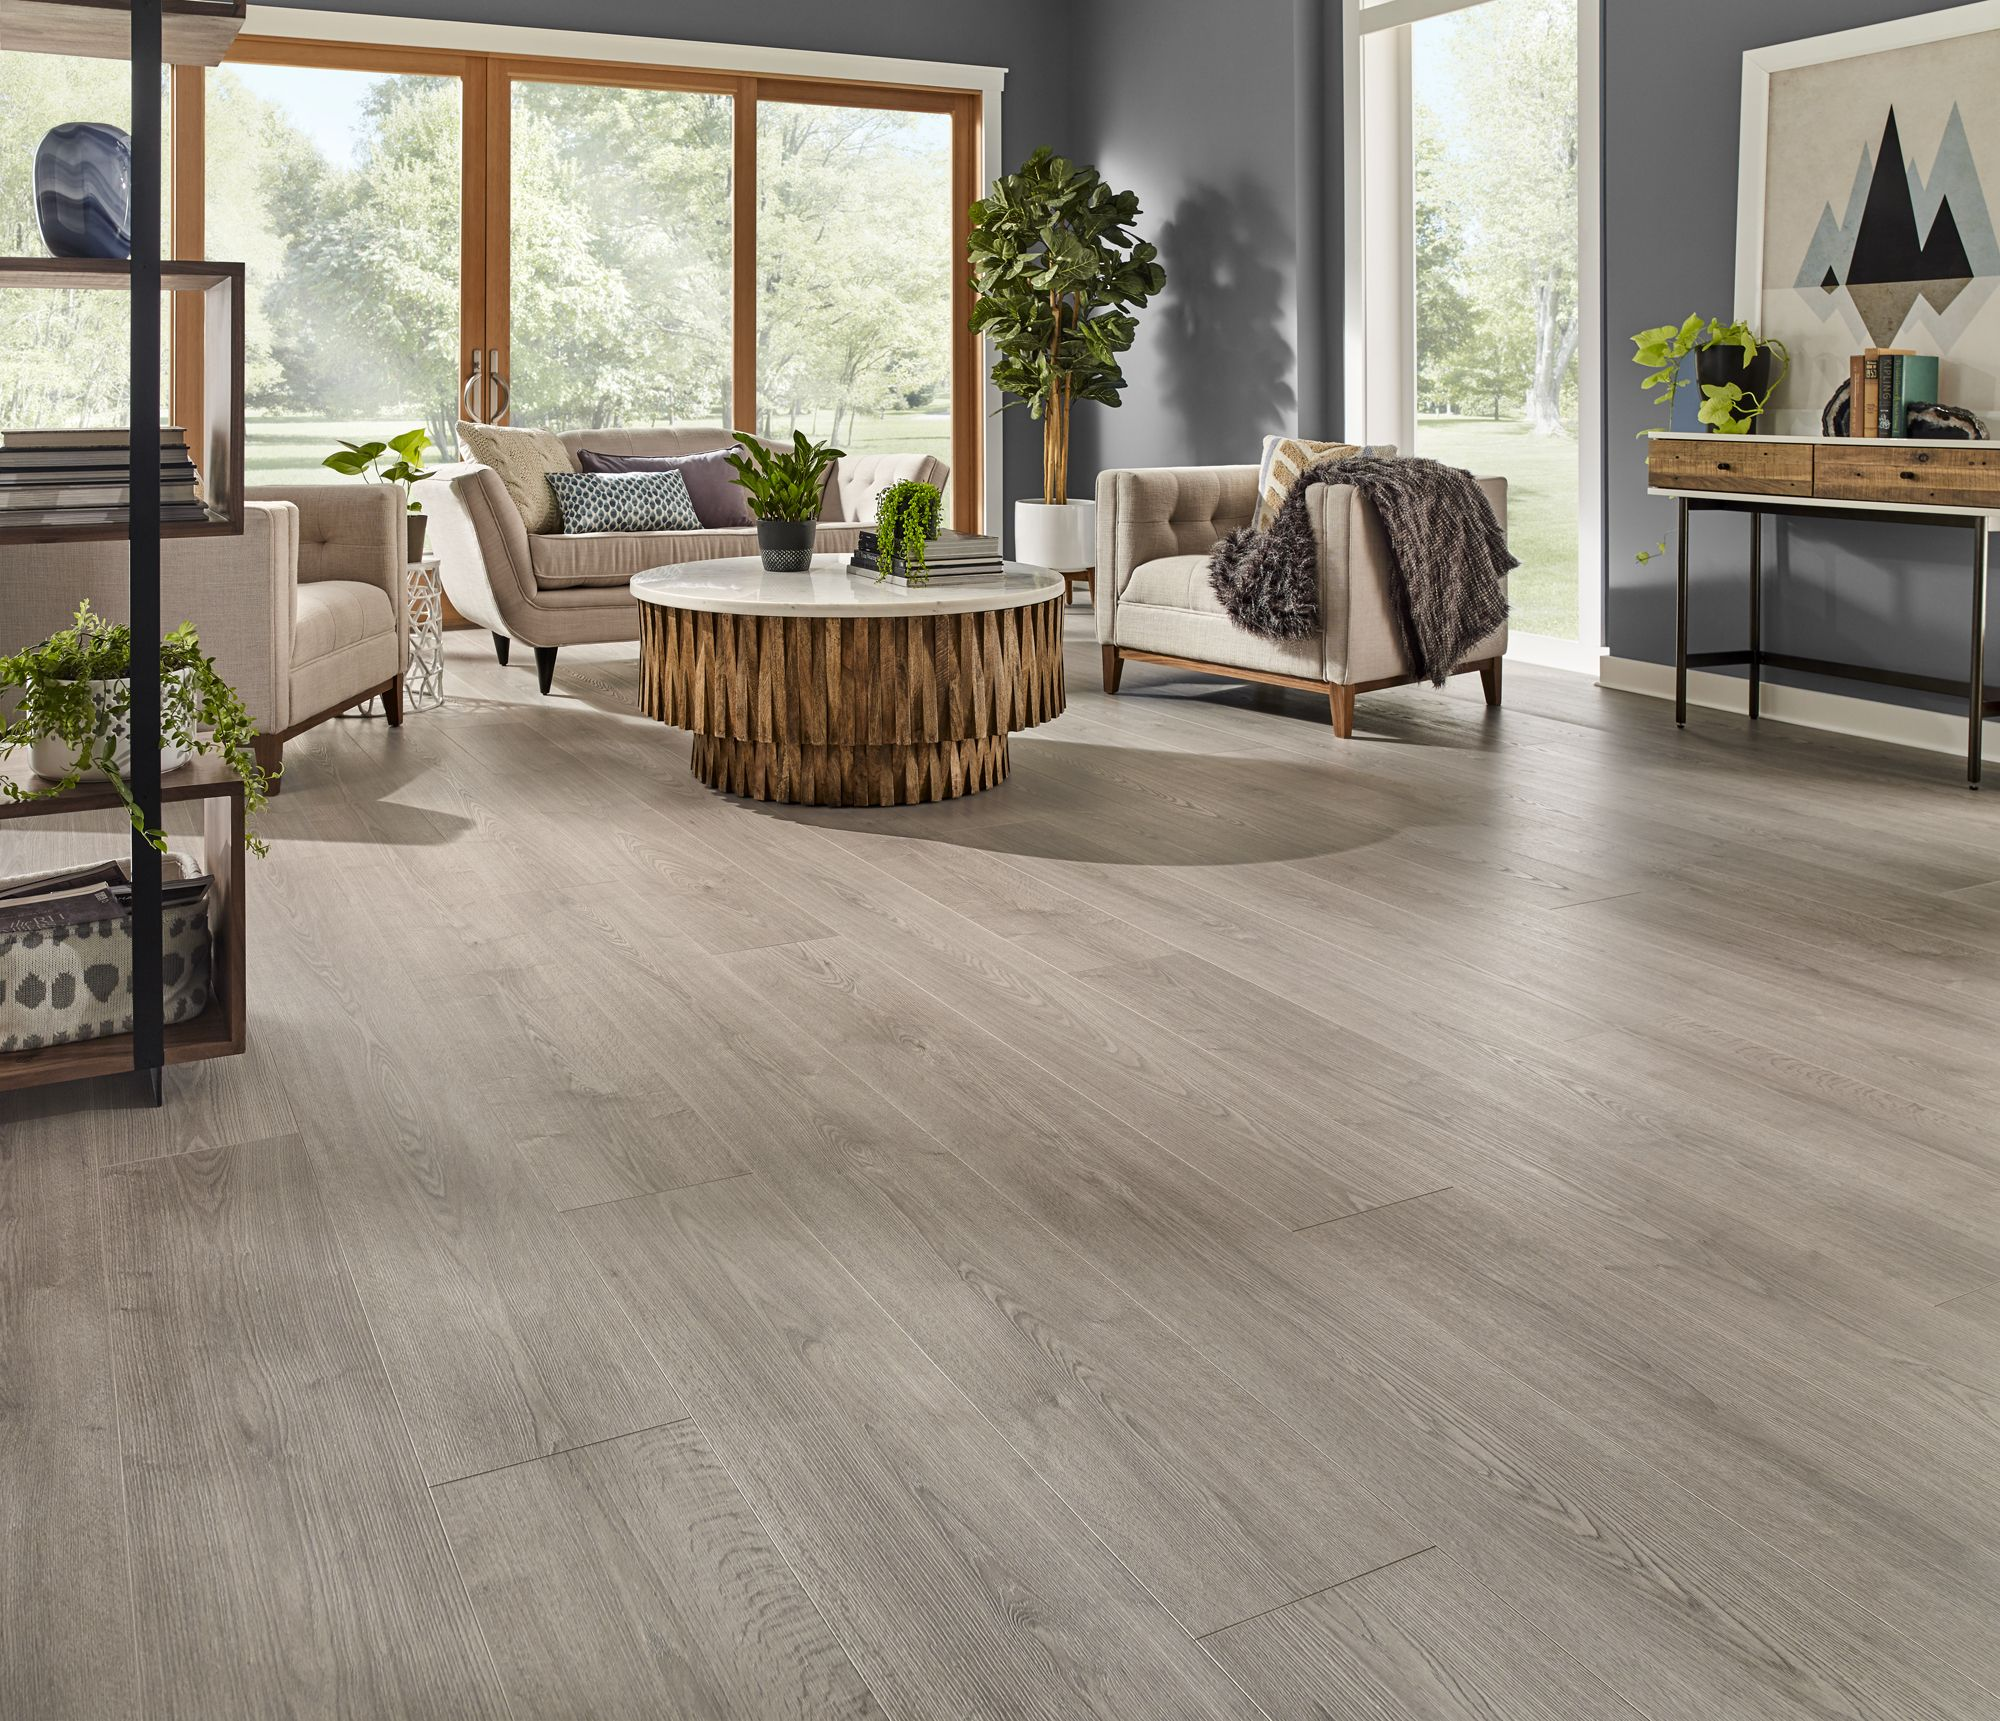 Misty Morning Oak Dream Home X2O It s 2X more water resistant